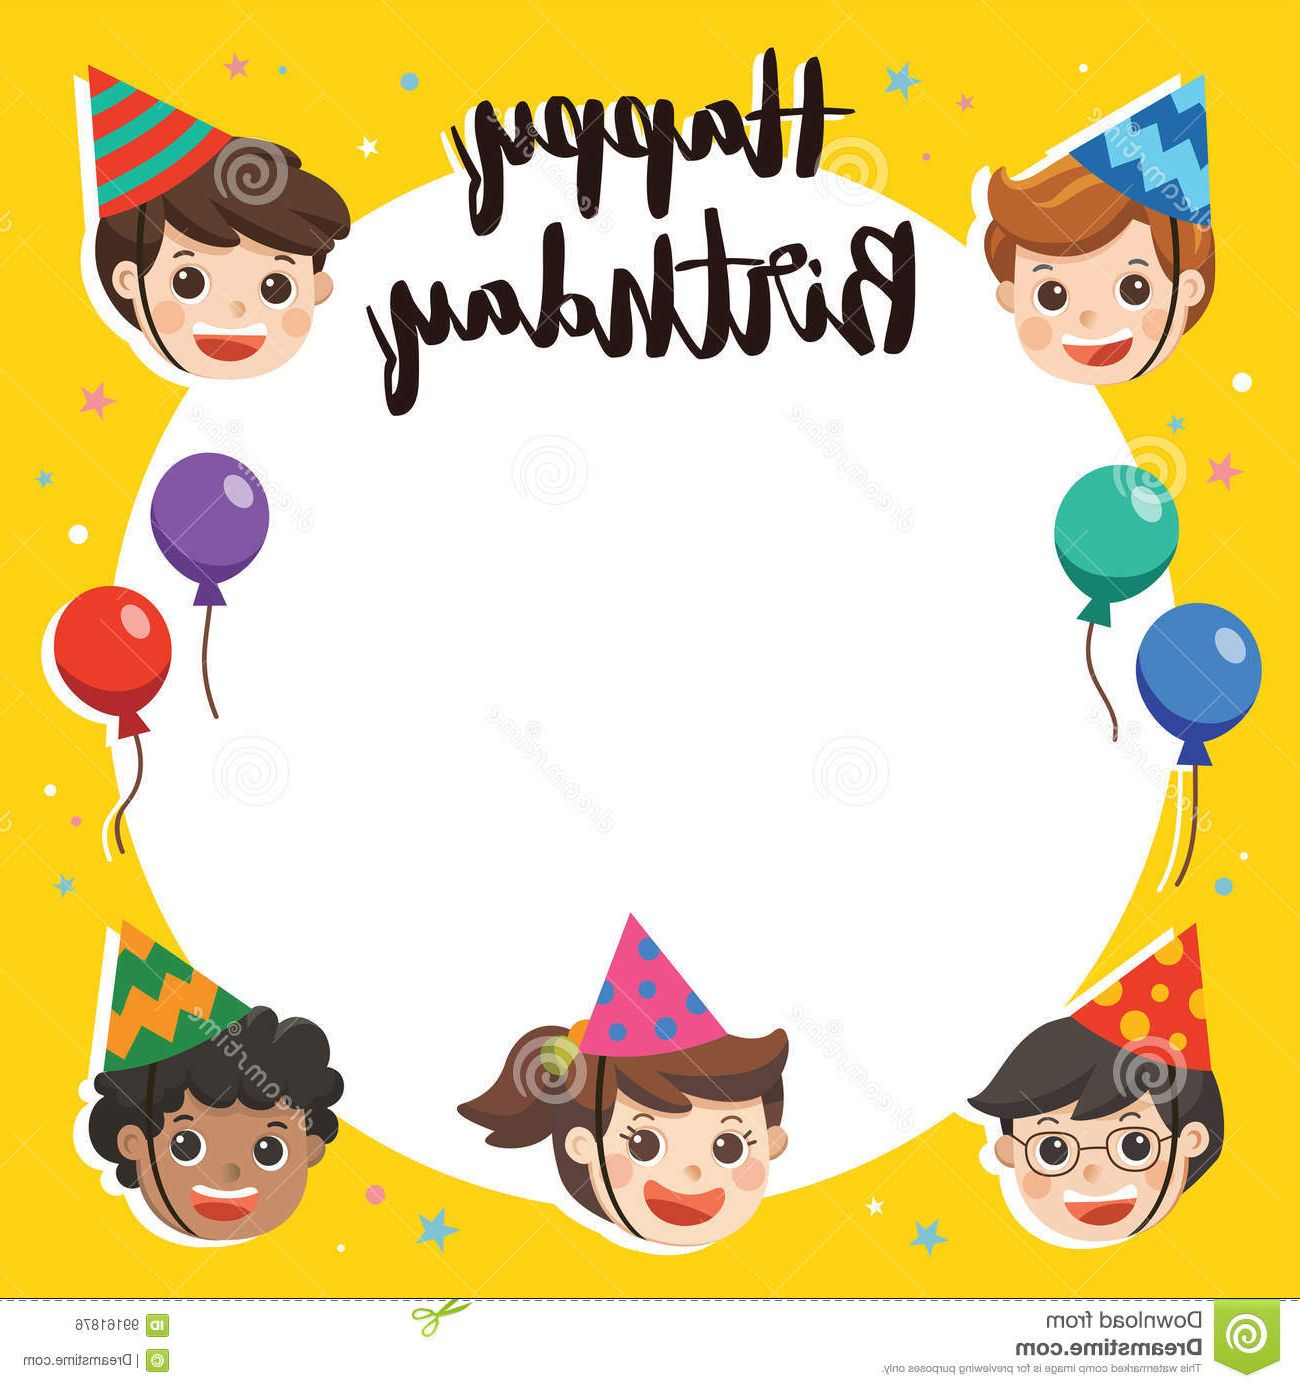 Free Download Of Funny Birthday Cards For Kids Kids Birthday Cards Funny Printable Birthday Cards Birthday Card Template